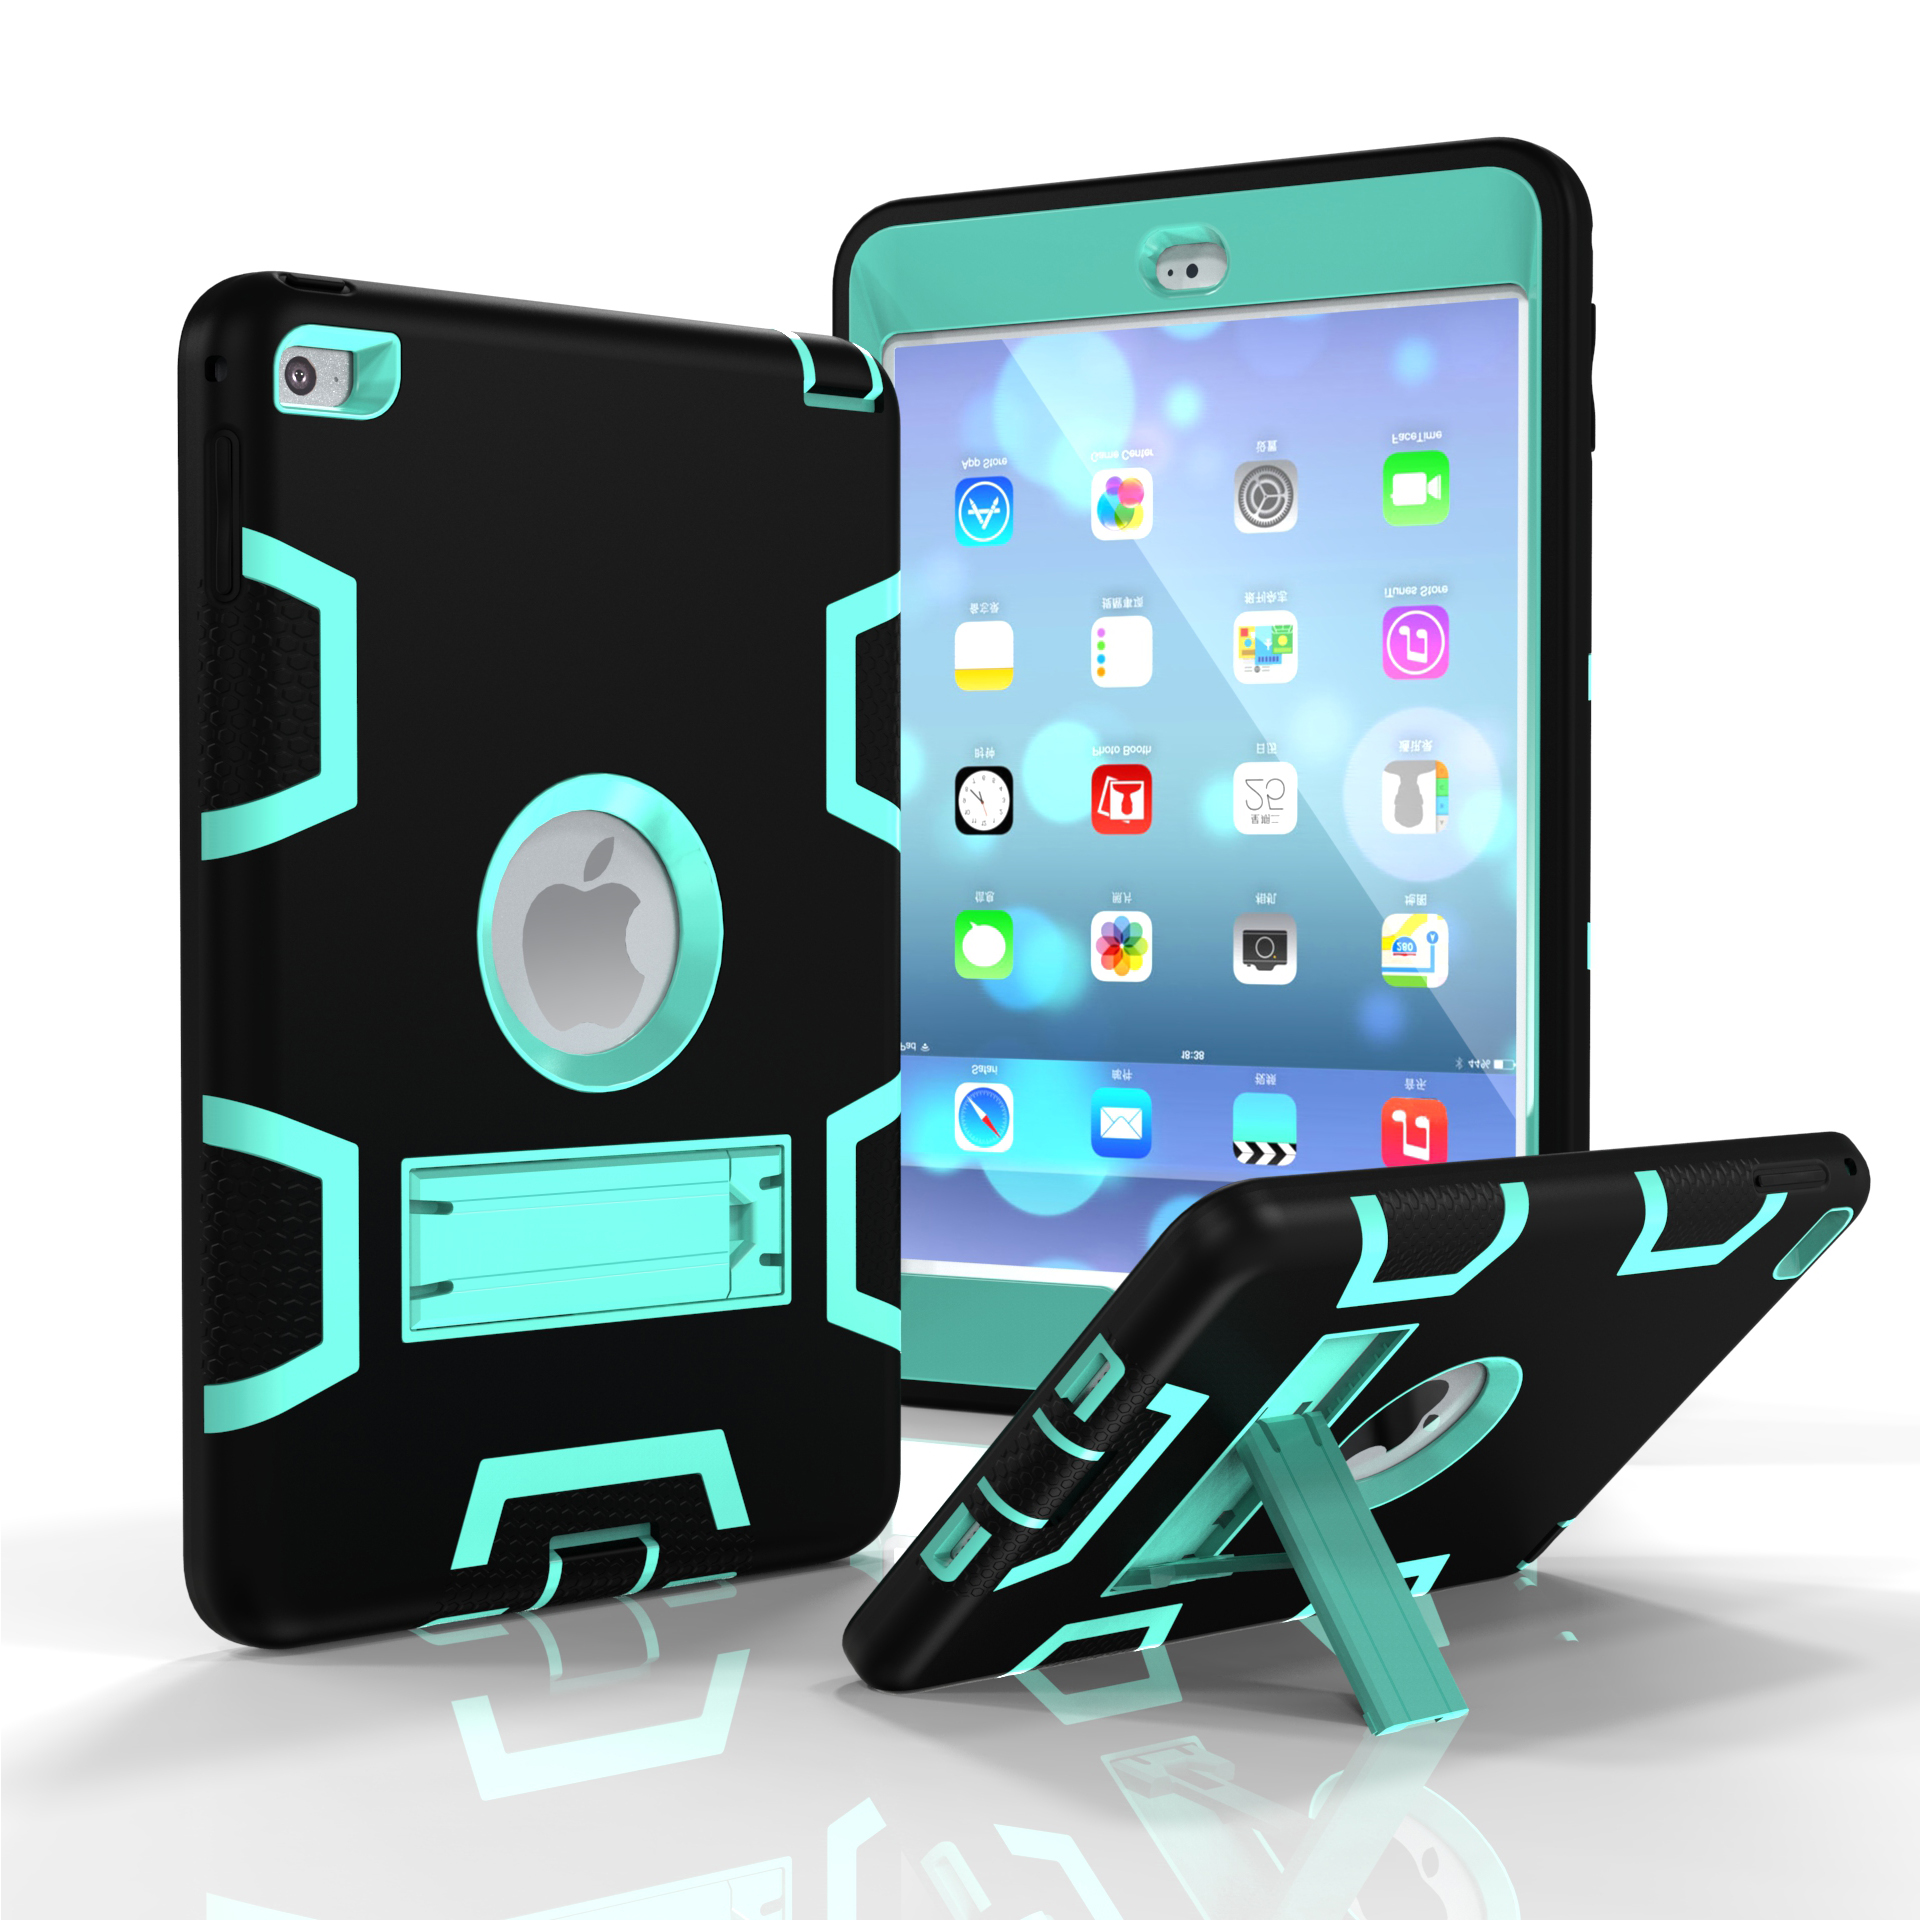 For IPAD MINI 4 PC+ Silicone Hit Color Armor Case Tri-proof Shockproof Dustproof Anti-fall Protective Cover  Black + mint green